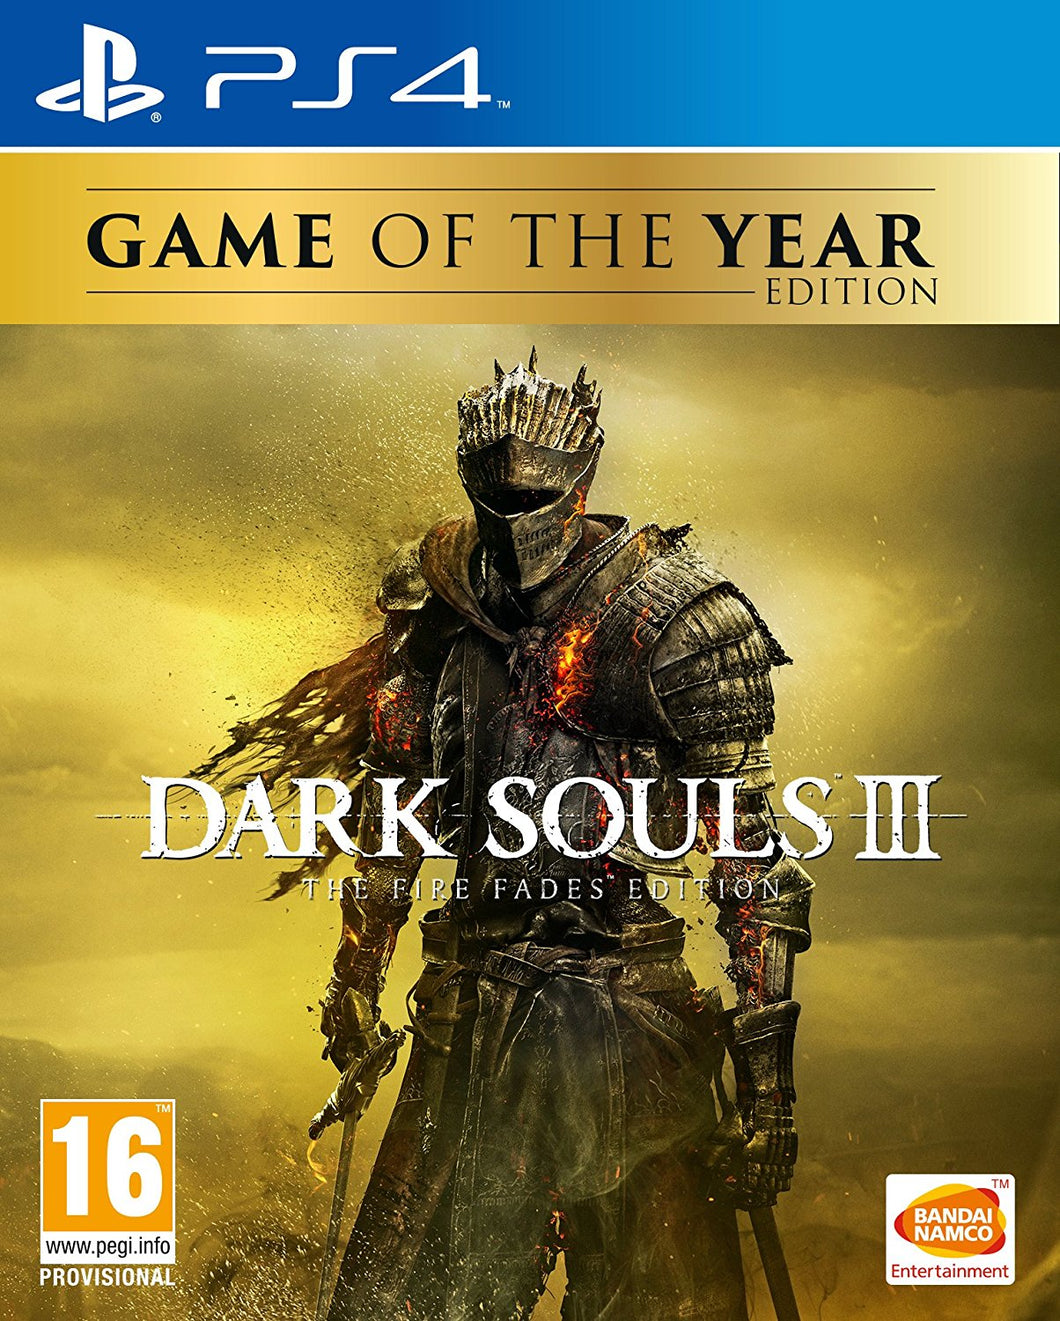 Dark Souls III The Fire Fades Edition GOTY Edition PS4